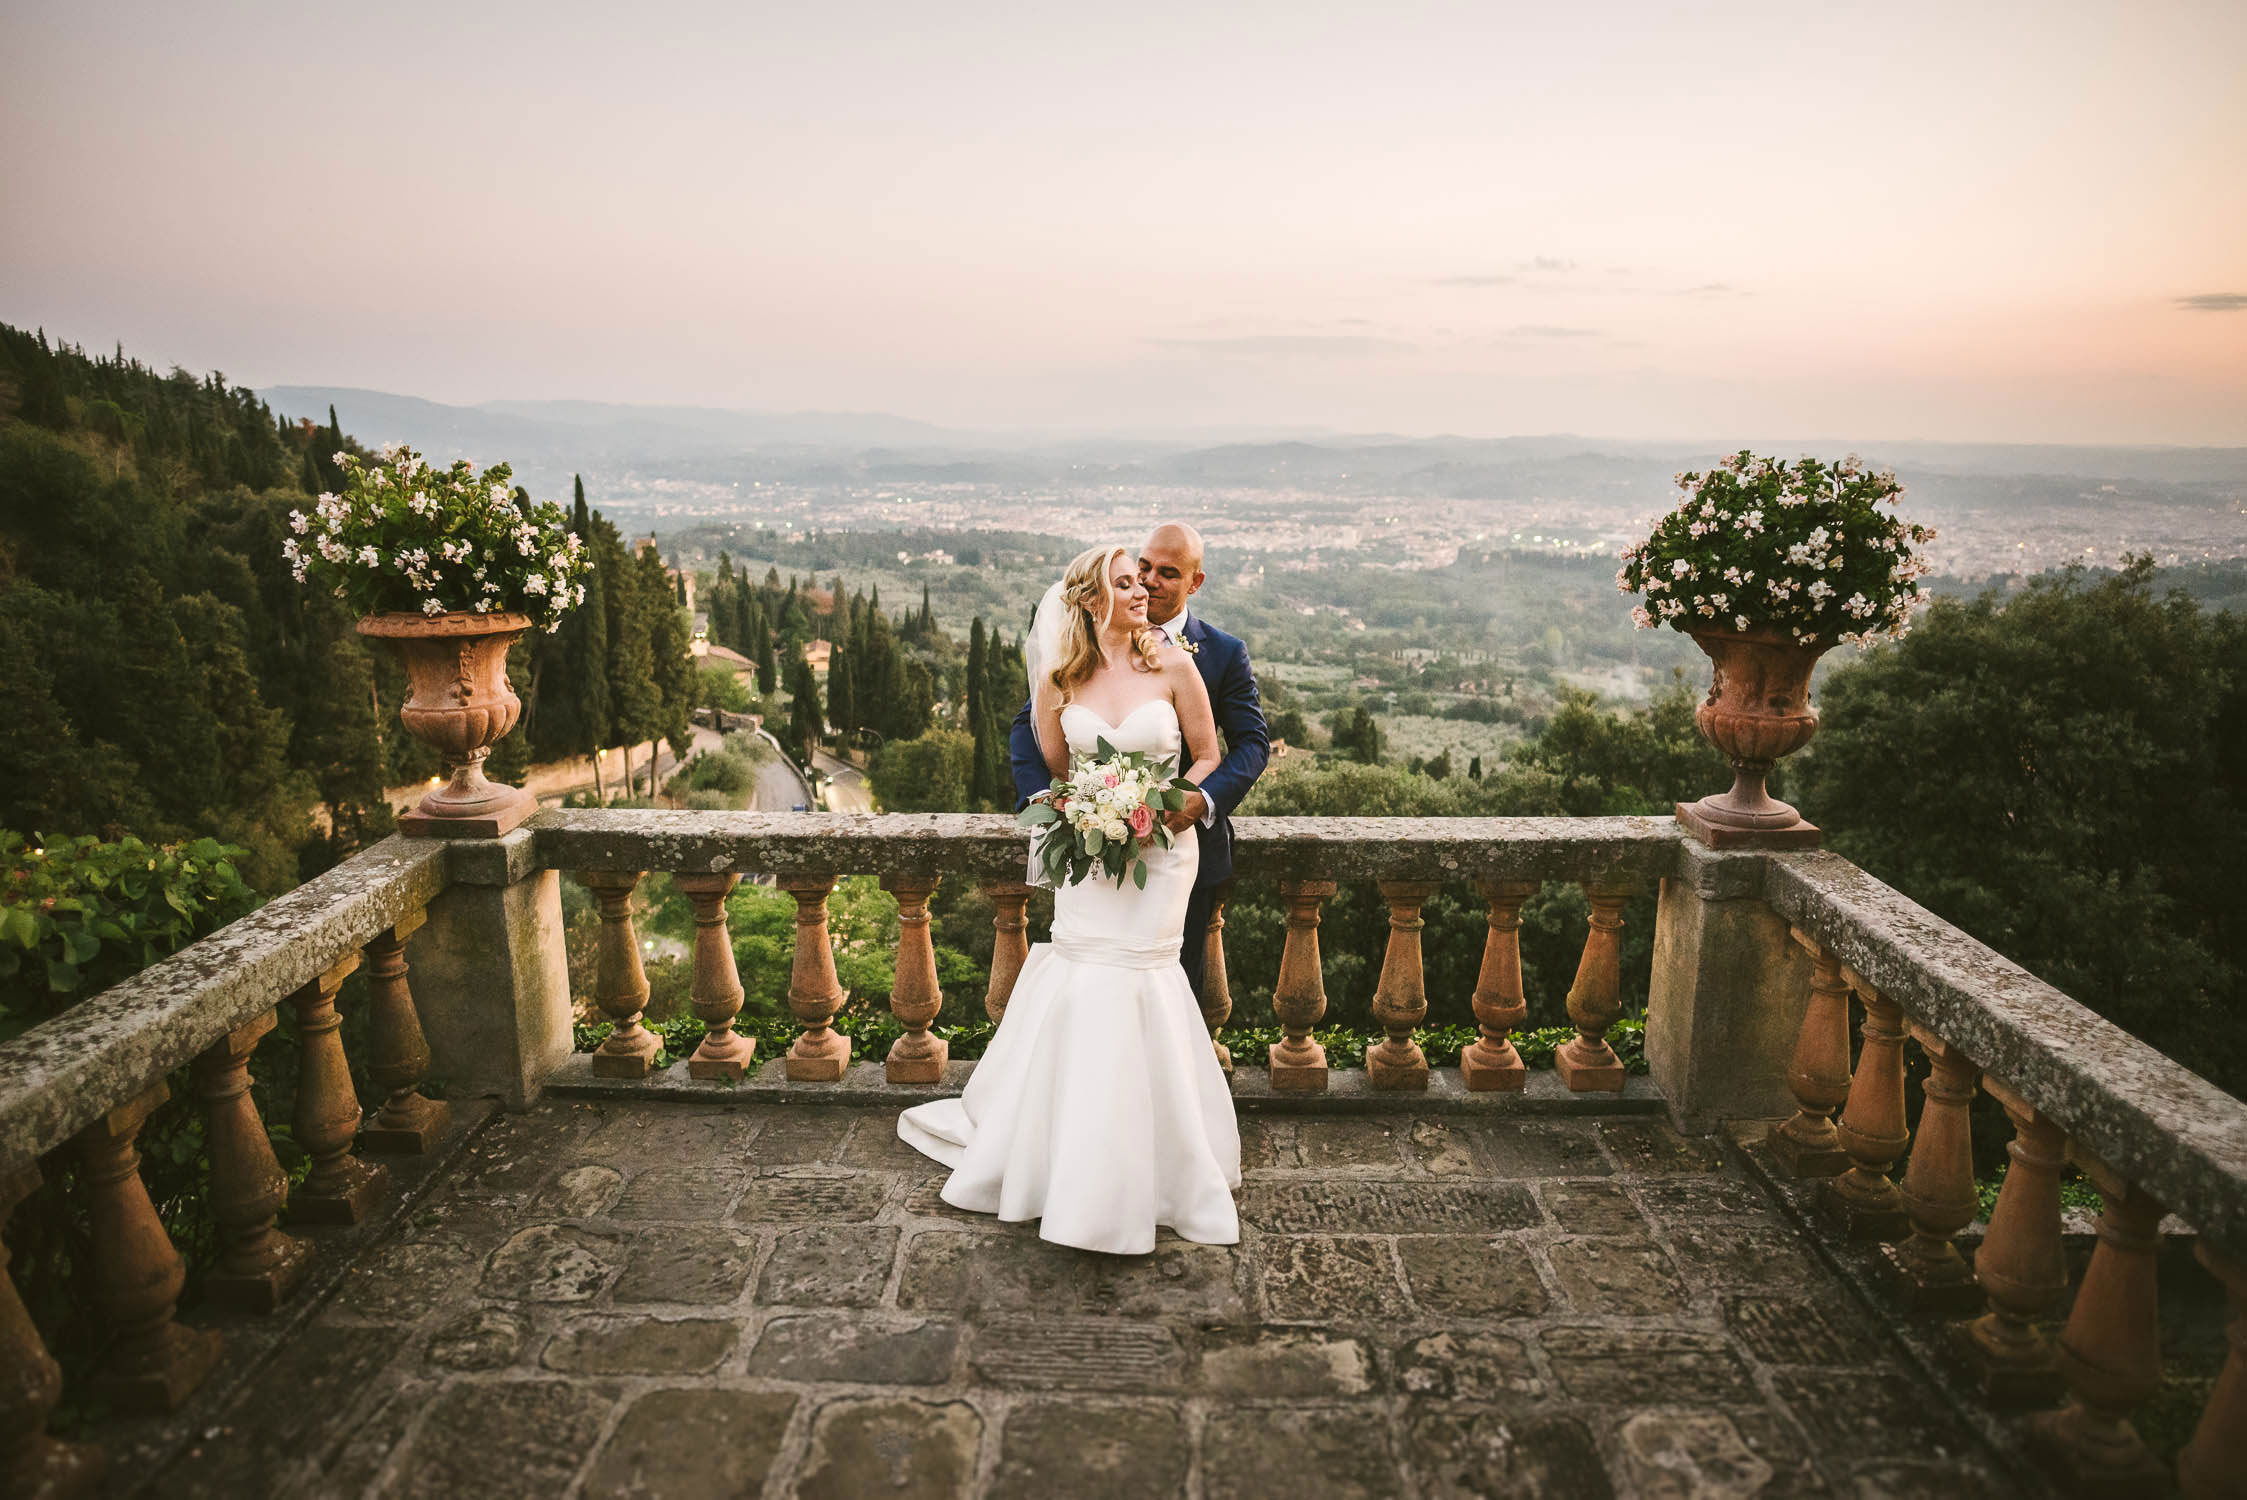 Gorgeous bride and groom share a lovely and unforgettable moment at Belmond Villa San Michele luxury venue near Florence